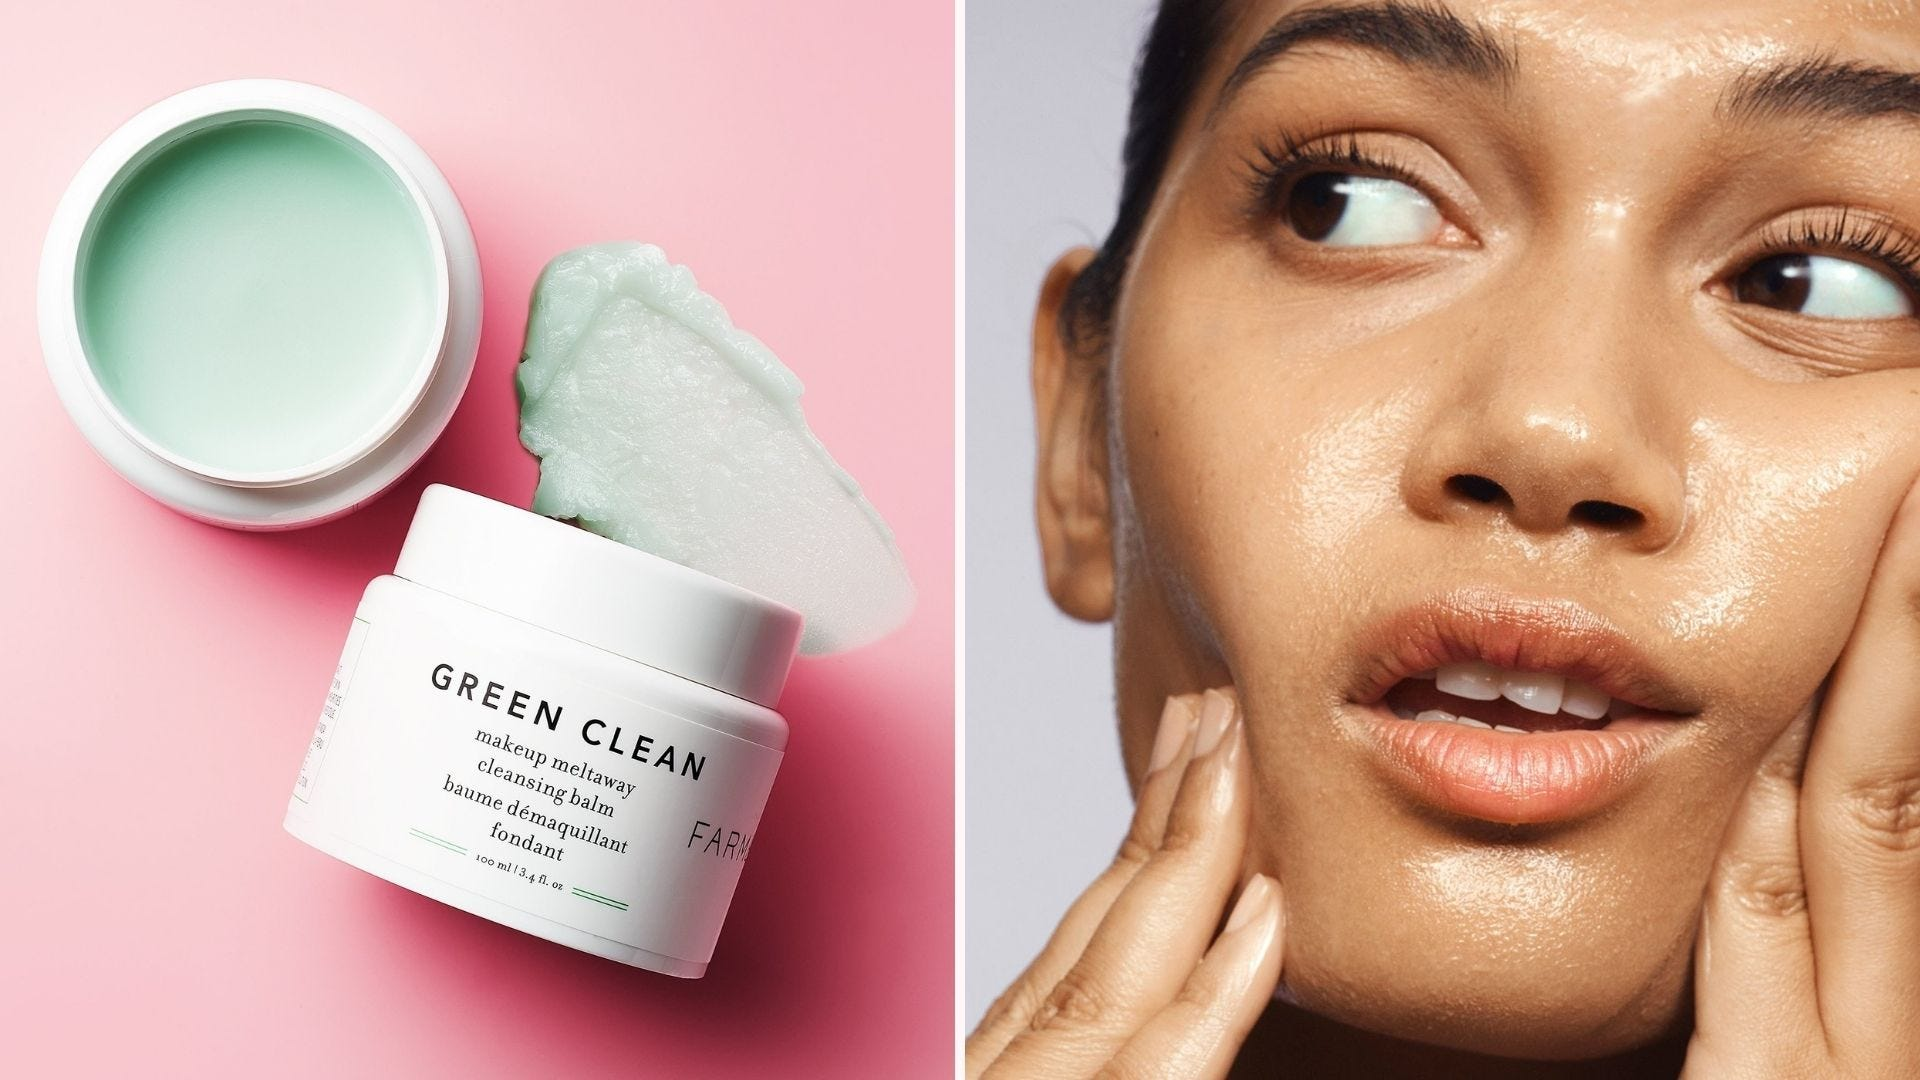 A white open jar of green balm, with a smear next to it; a woman's face with oily balm all over